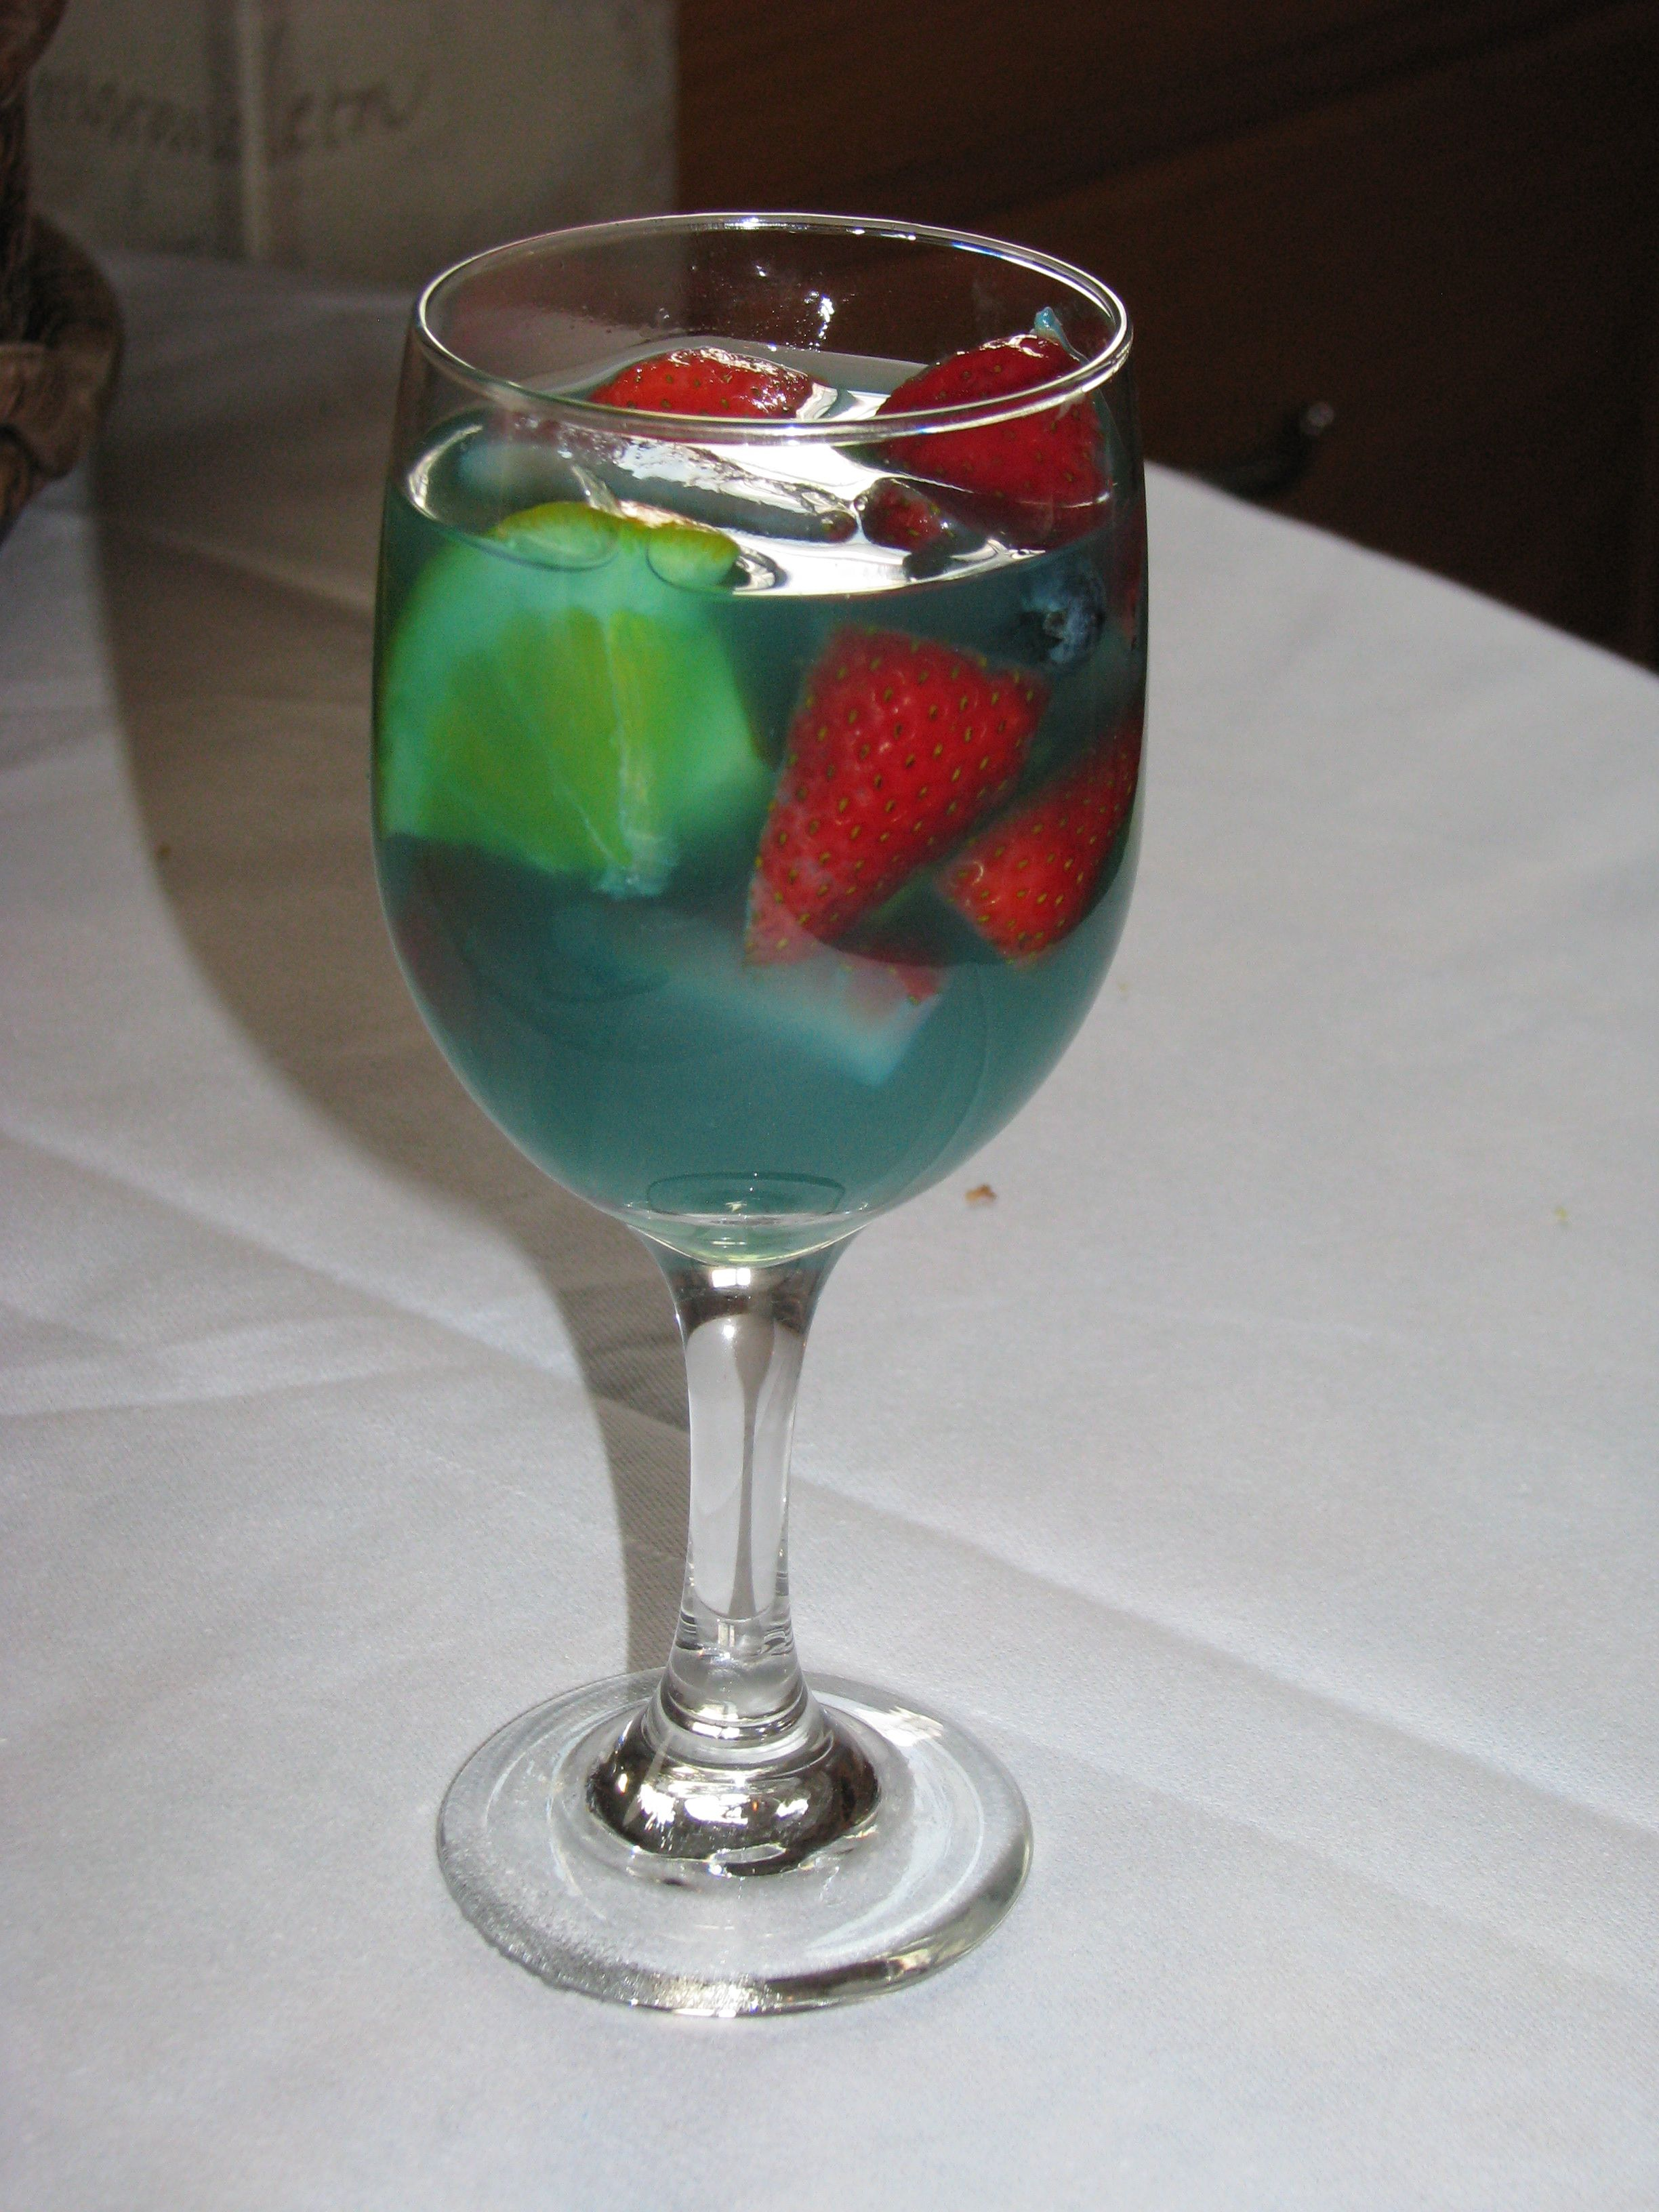 And it was delicious! Blue Sangria for baby boy shower: 1 bottle Cabernet Sauvignon 2/3 cup blue Curacao 1/3 cup Orange Juice 2-4 tablespoons of sugar Mix well, add chopped fruit: strawberries, oranges, apples and blueberries. Chill and serve.